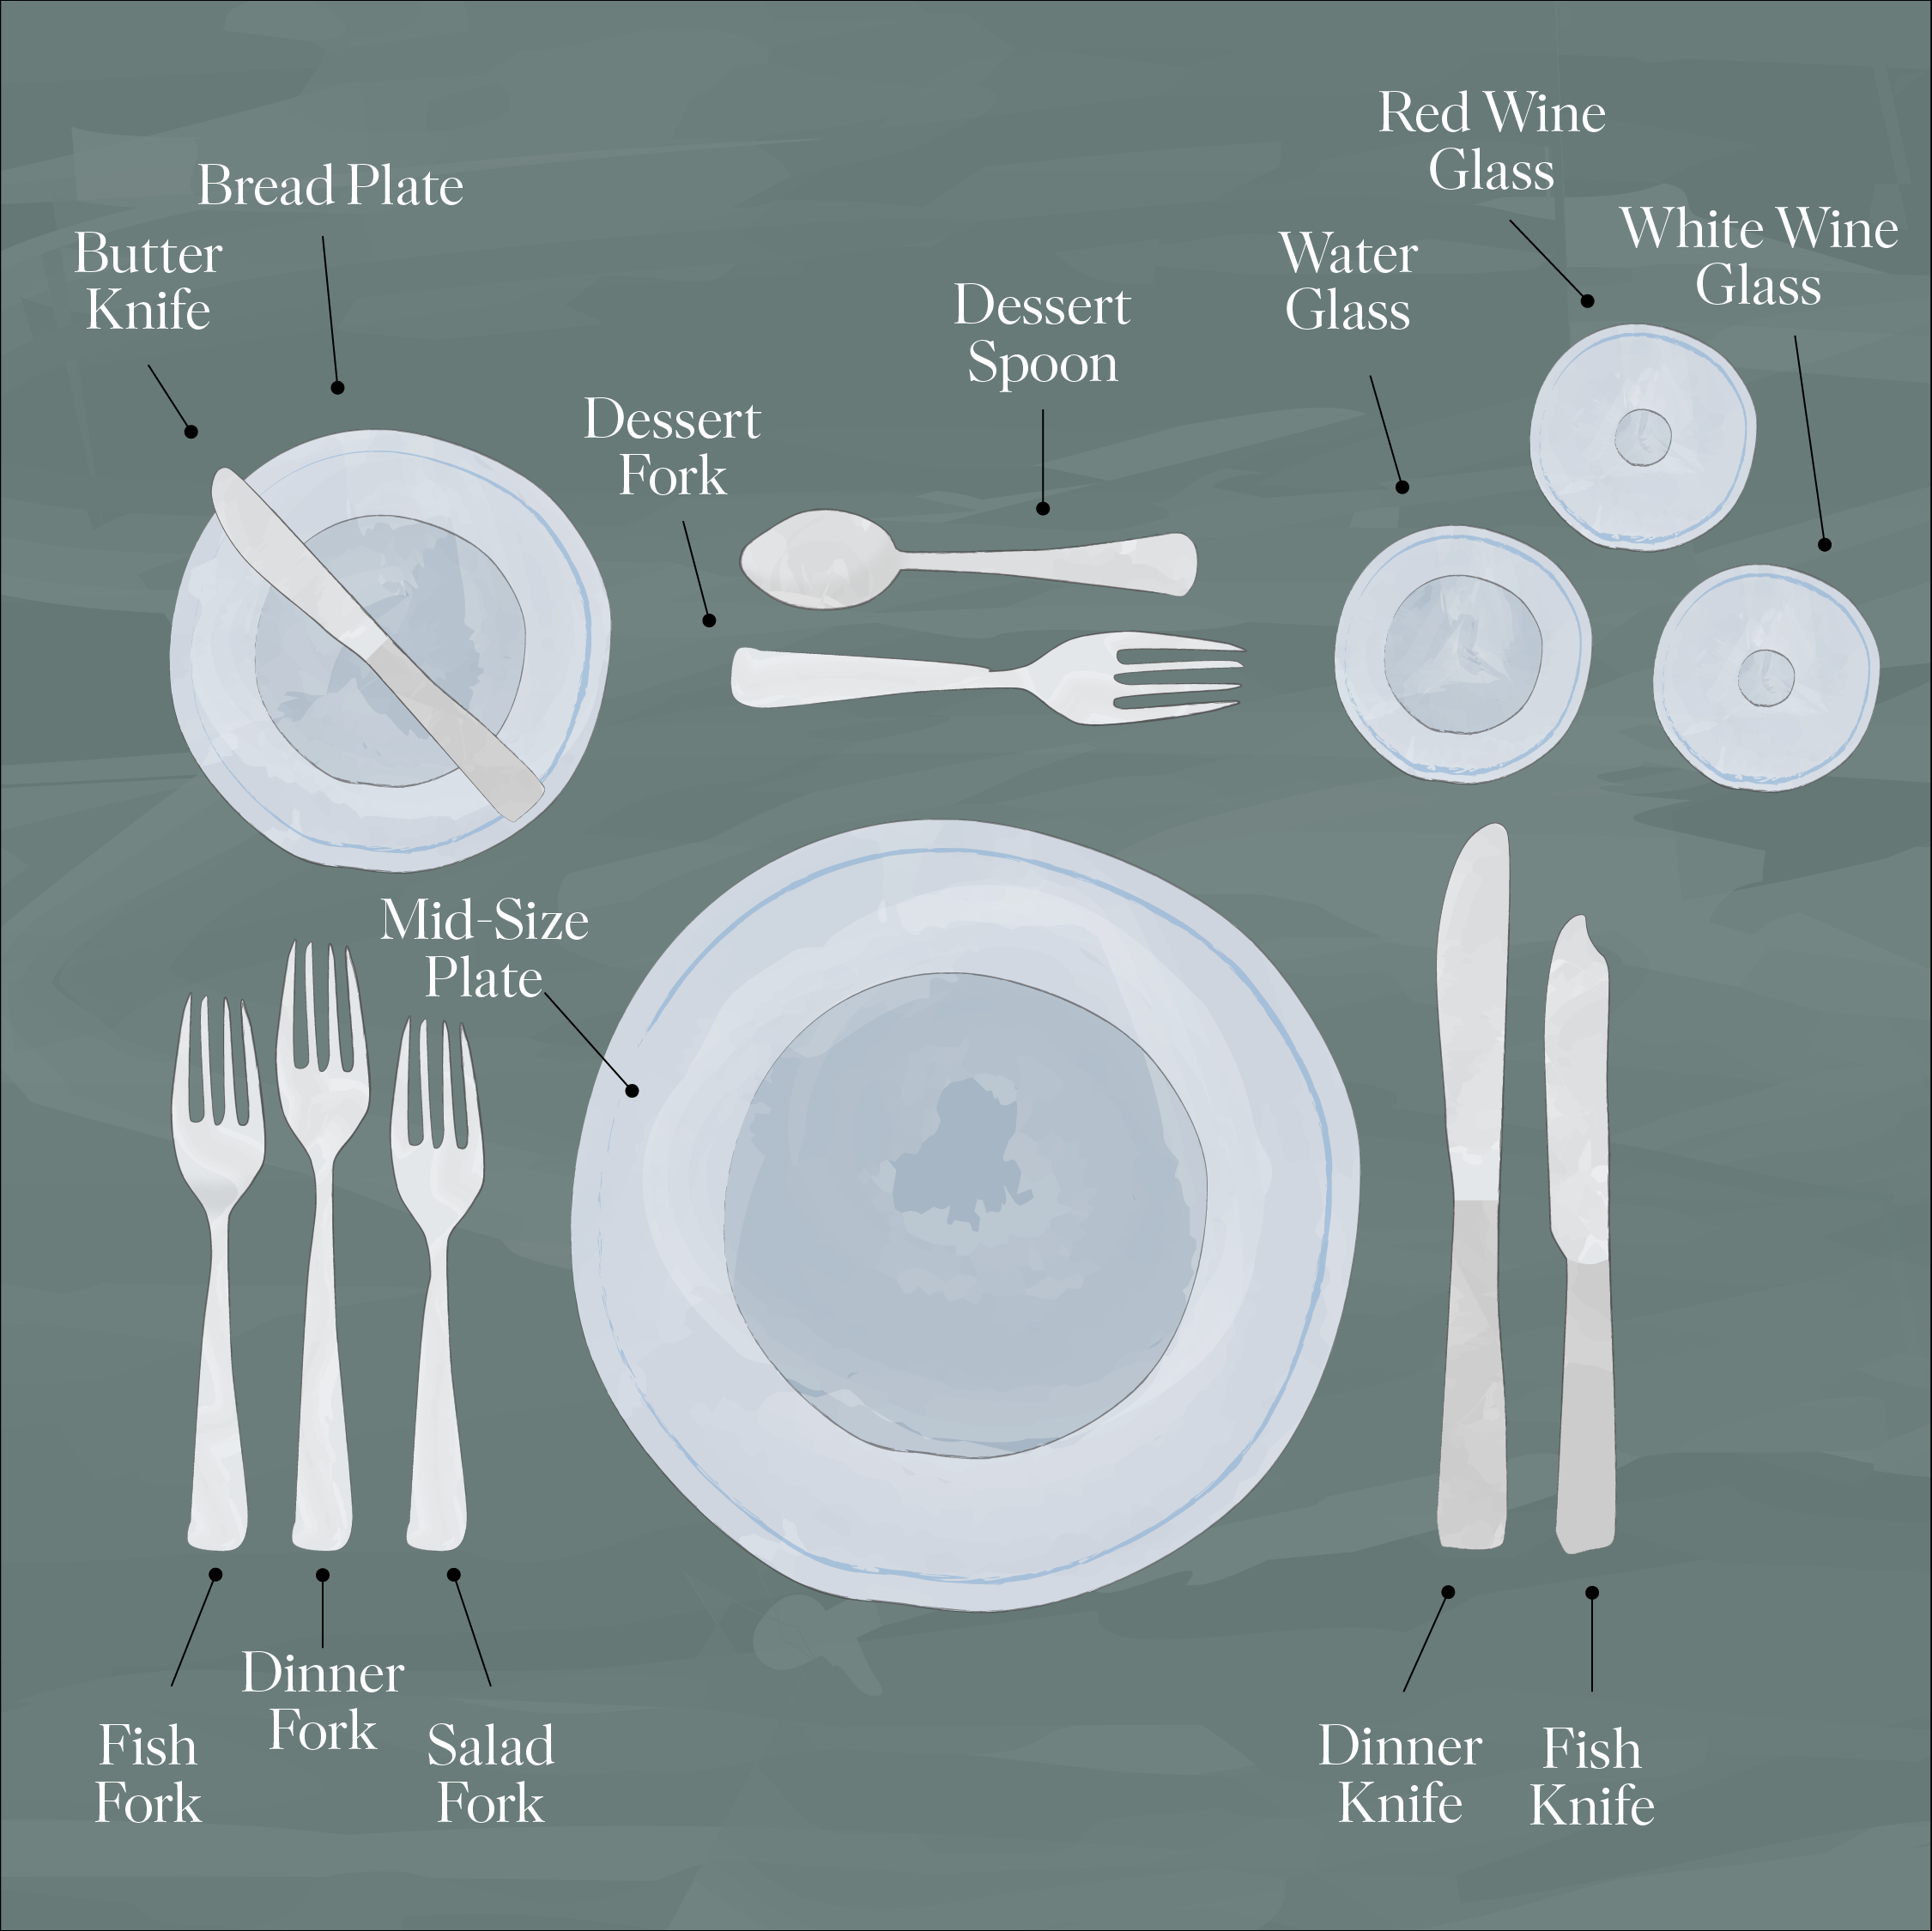 Formal Dining Table Setting Illustration